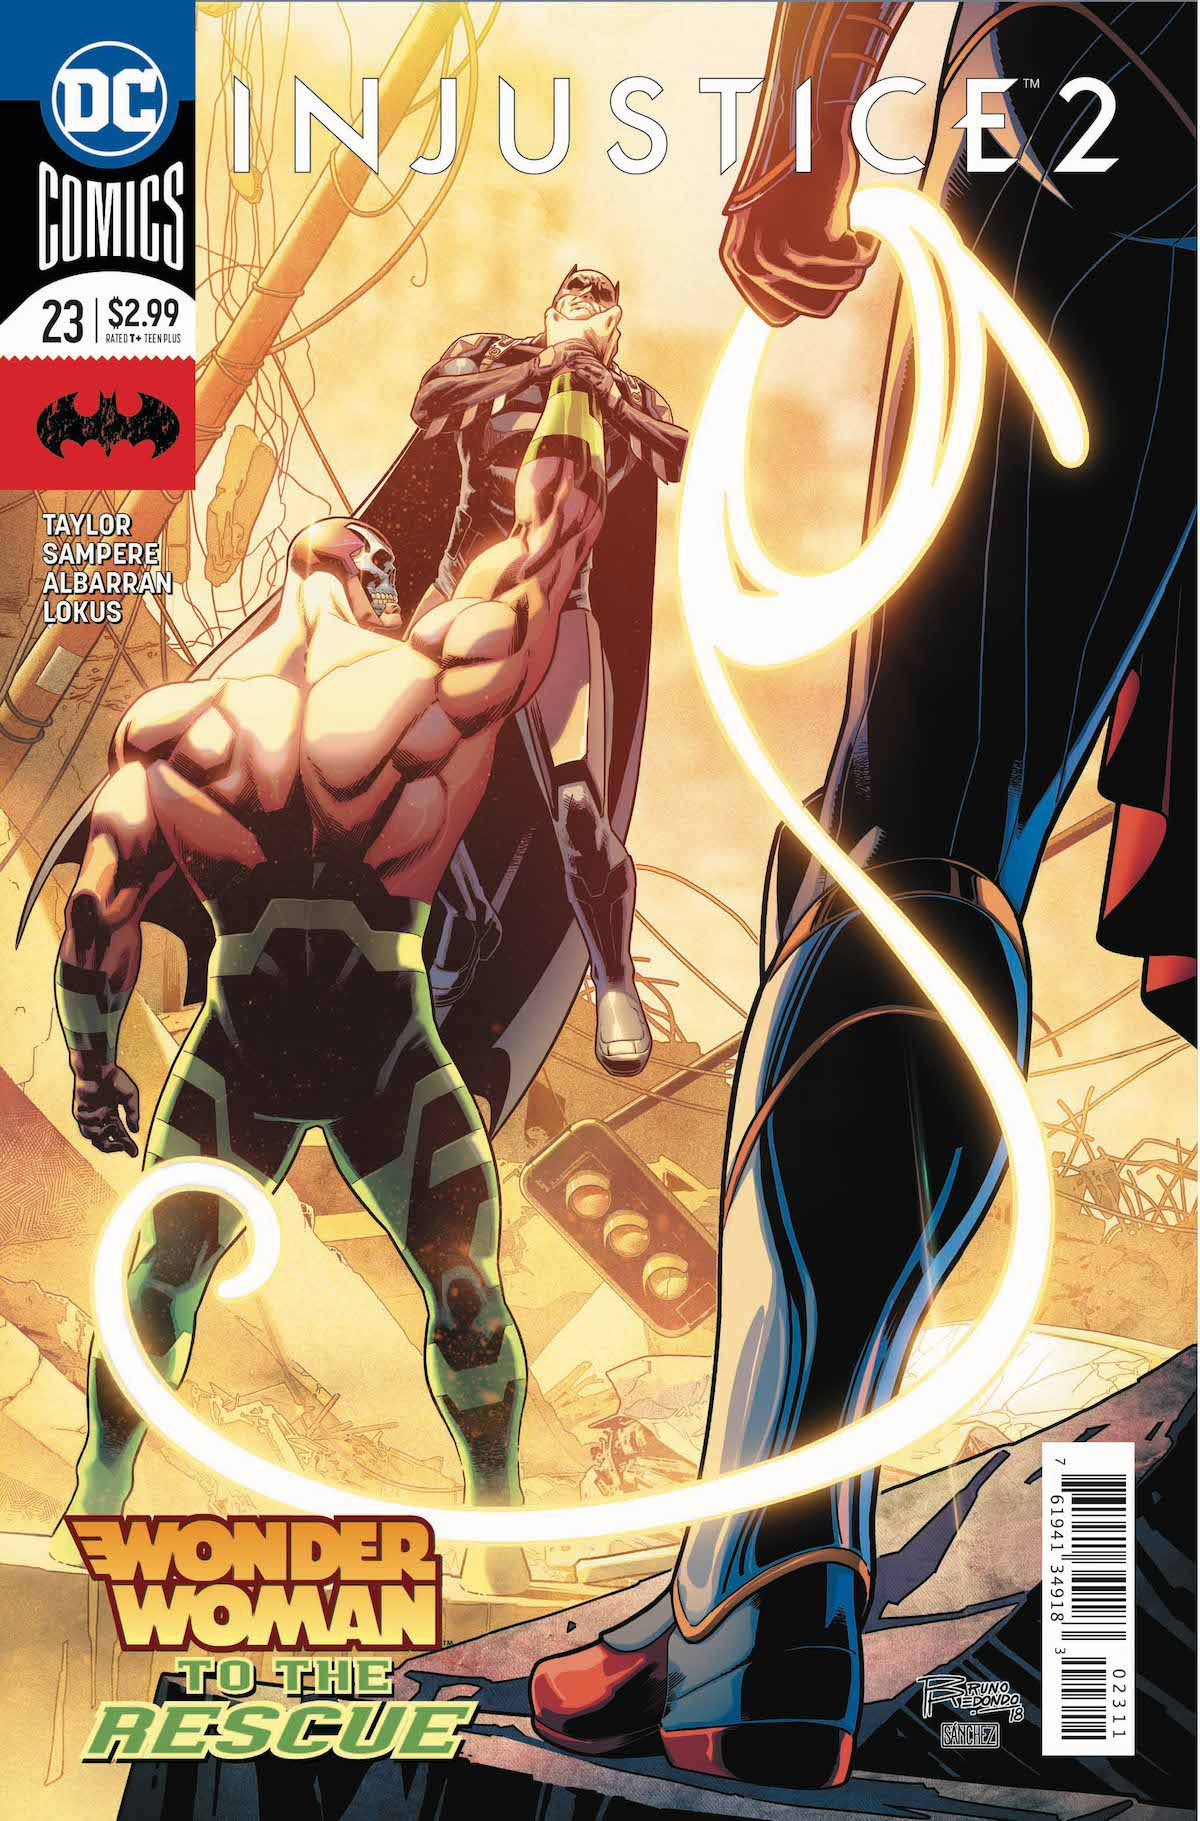 Injustice 2 #23 cover